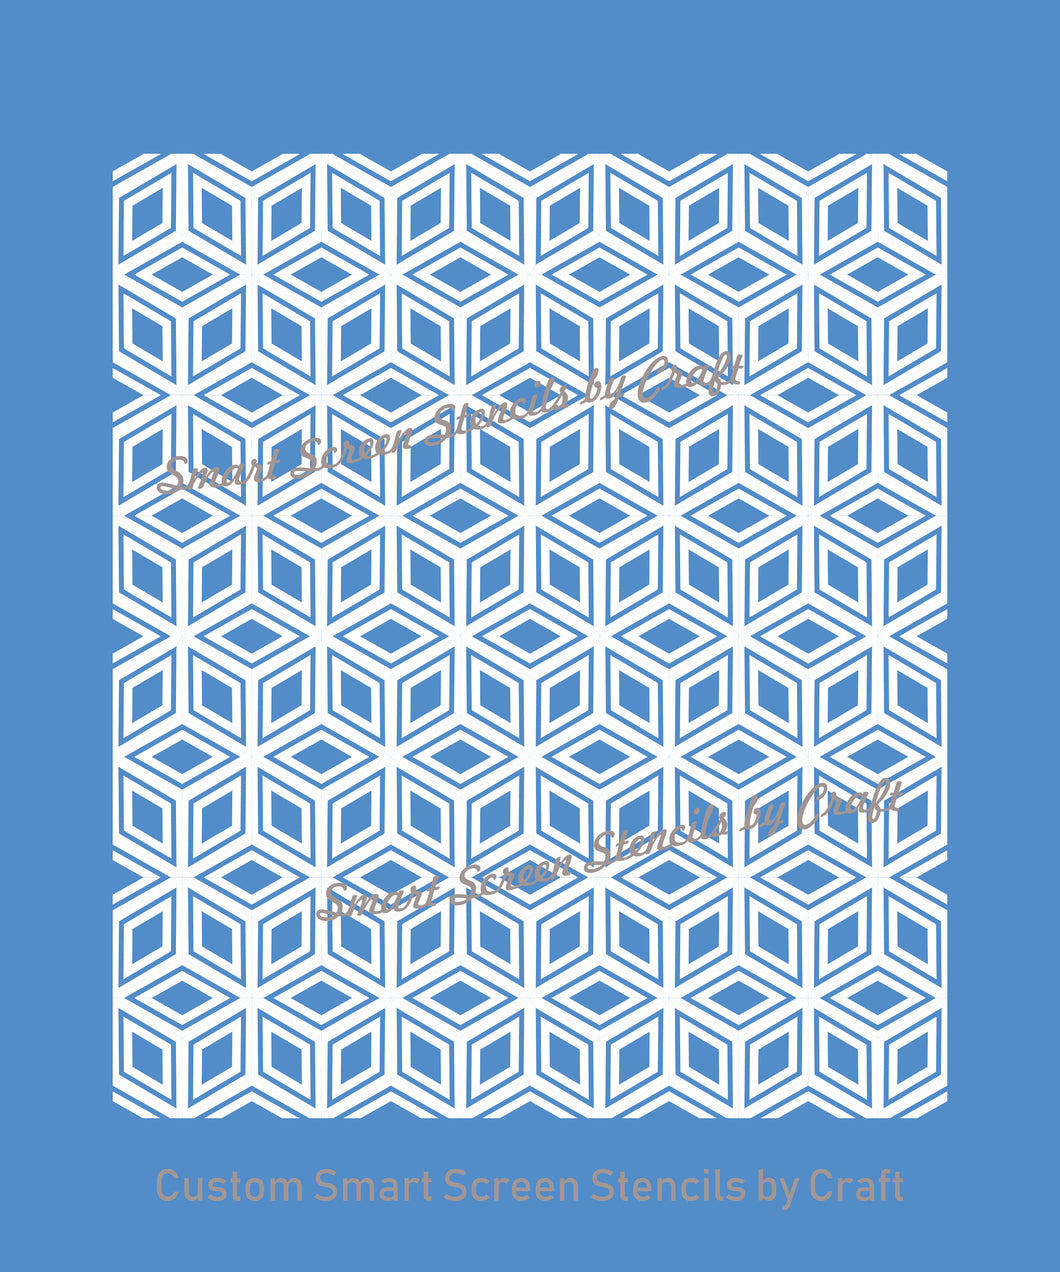 3D Cube Pattern Silkscreen Stencil - Seamless, Self adhesive, Reusable - Canvas, Cards, Glass, Ceramic, Walls, Fabric, Wood, Metal, Clay